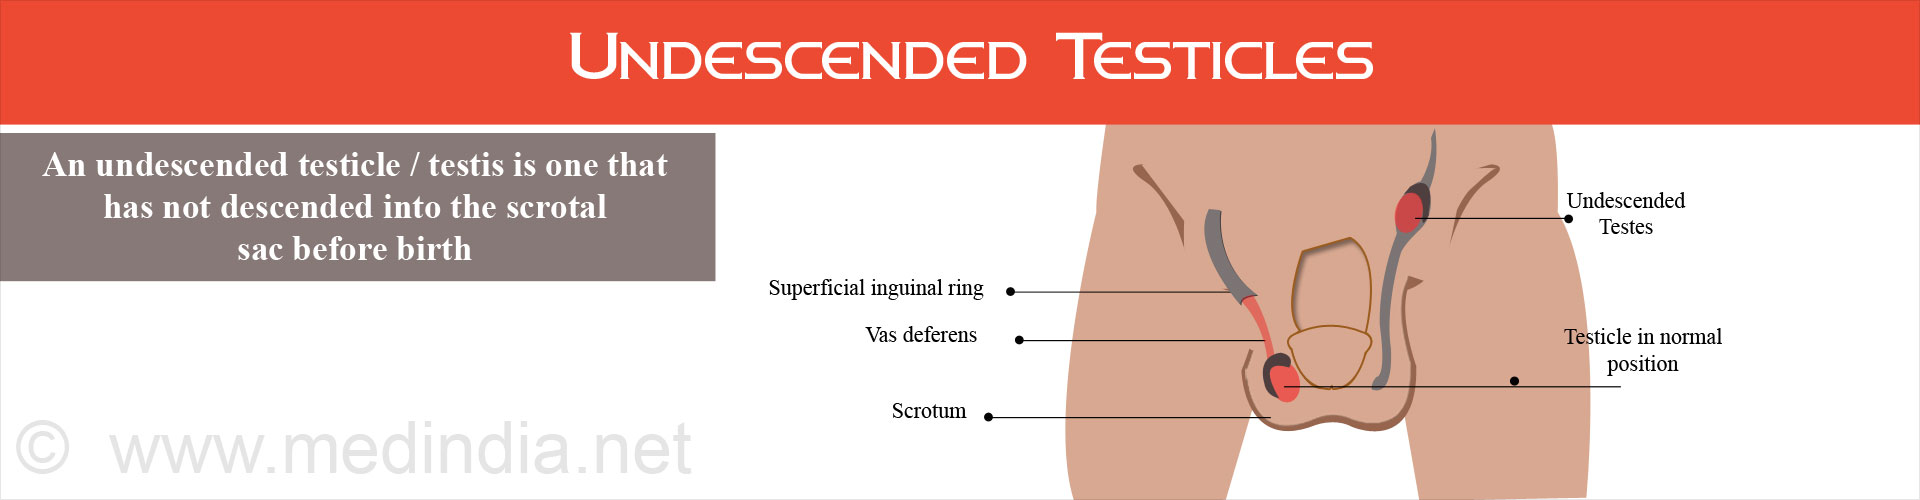 Undescended Testicles (Cryptorchidism)